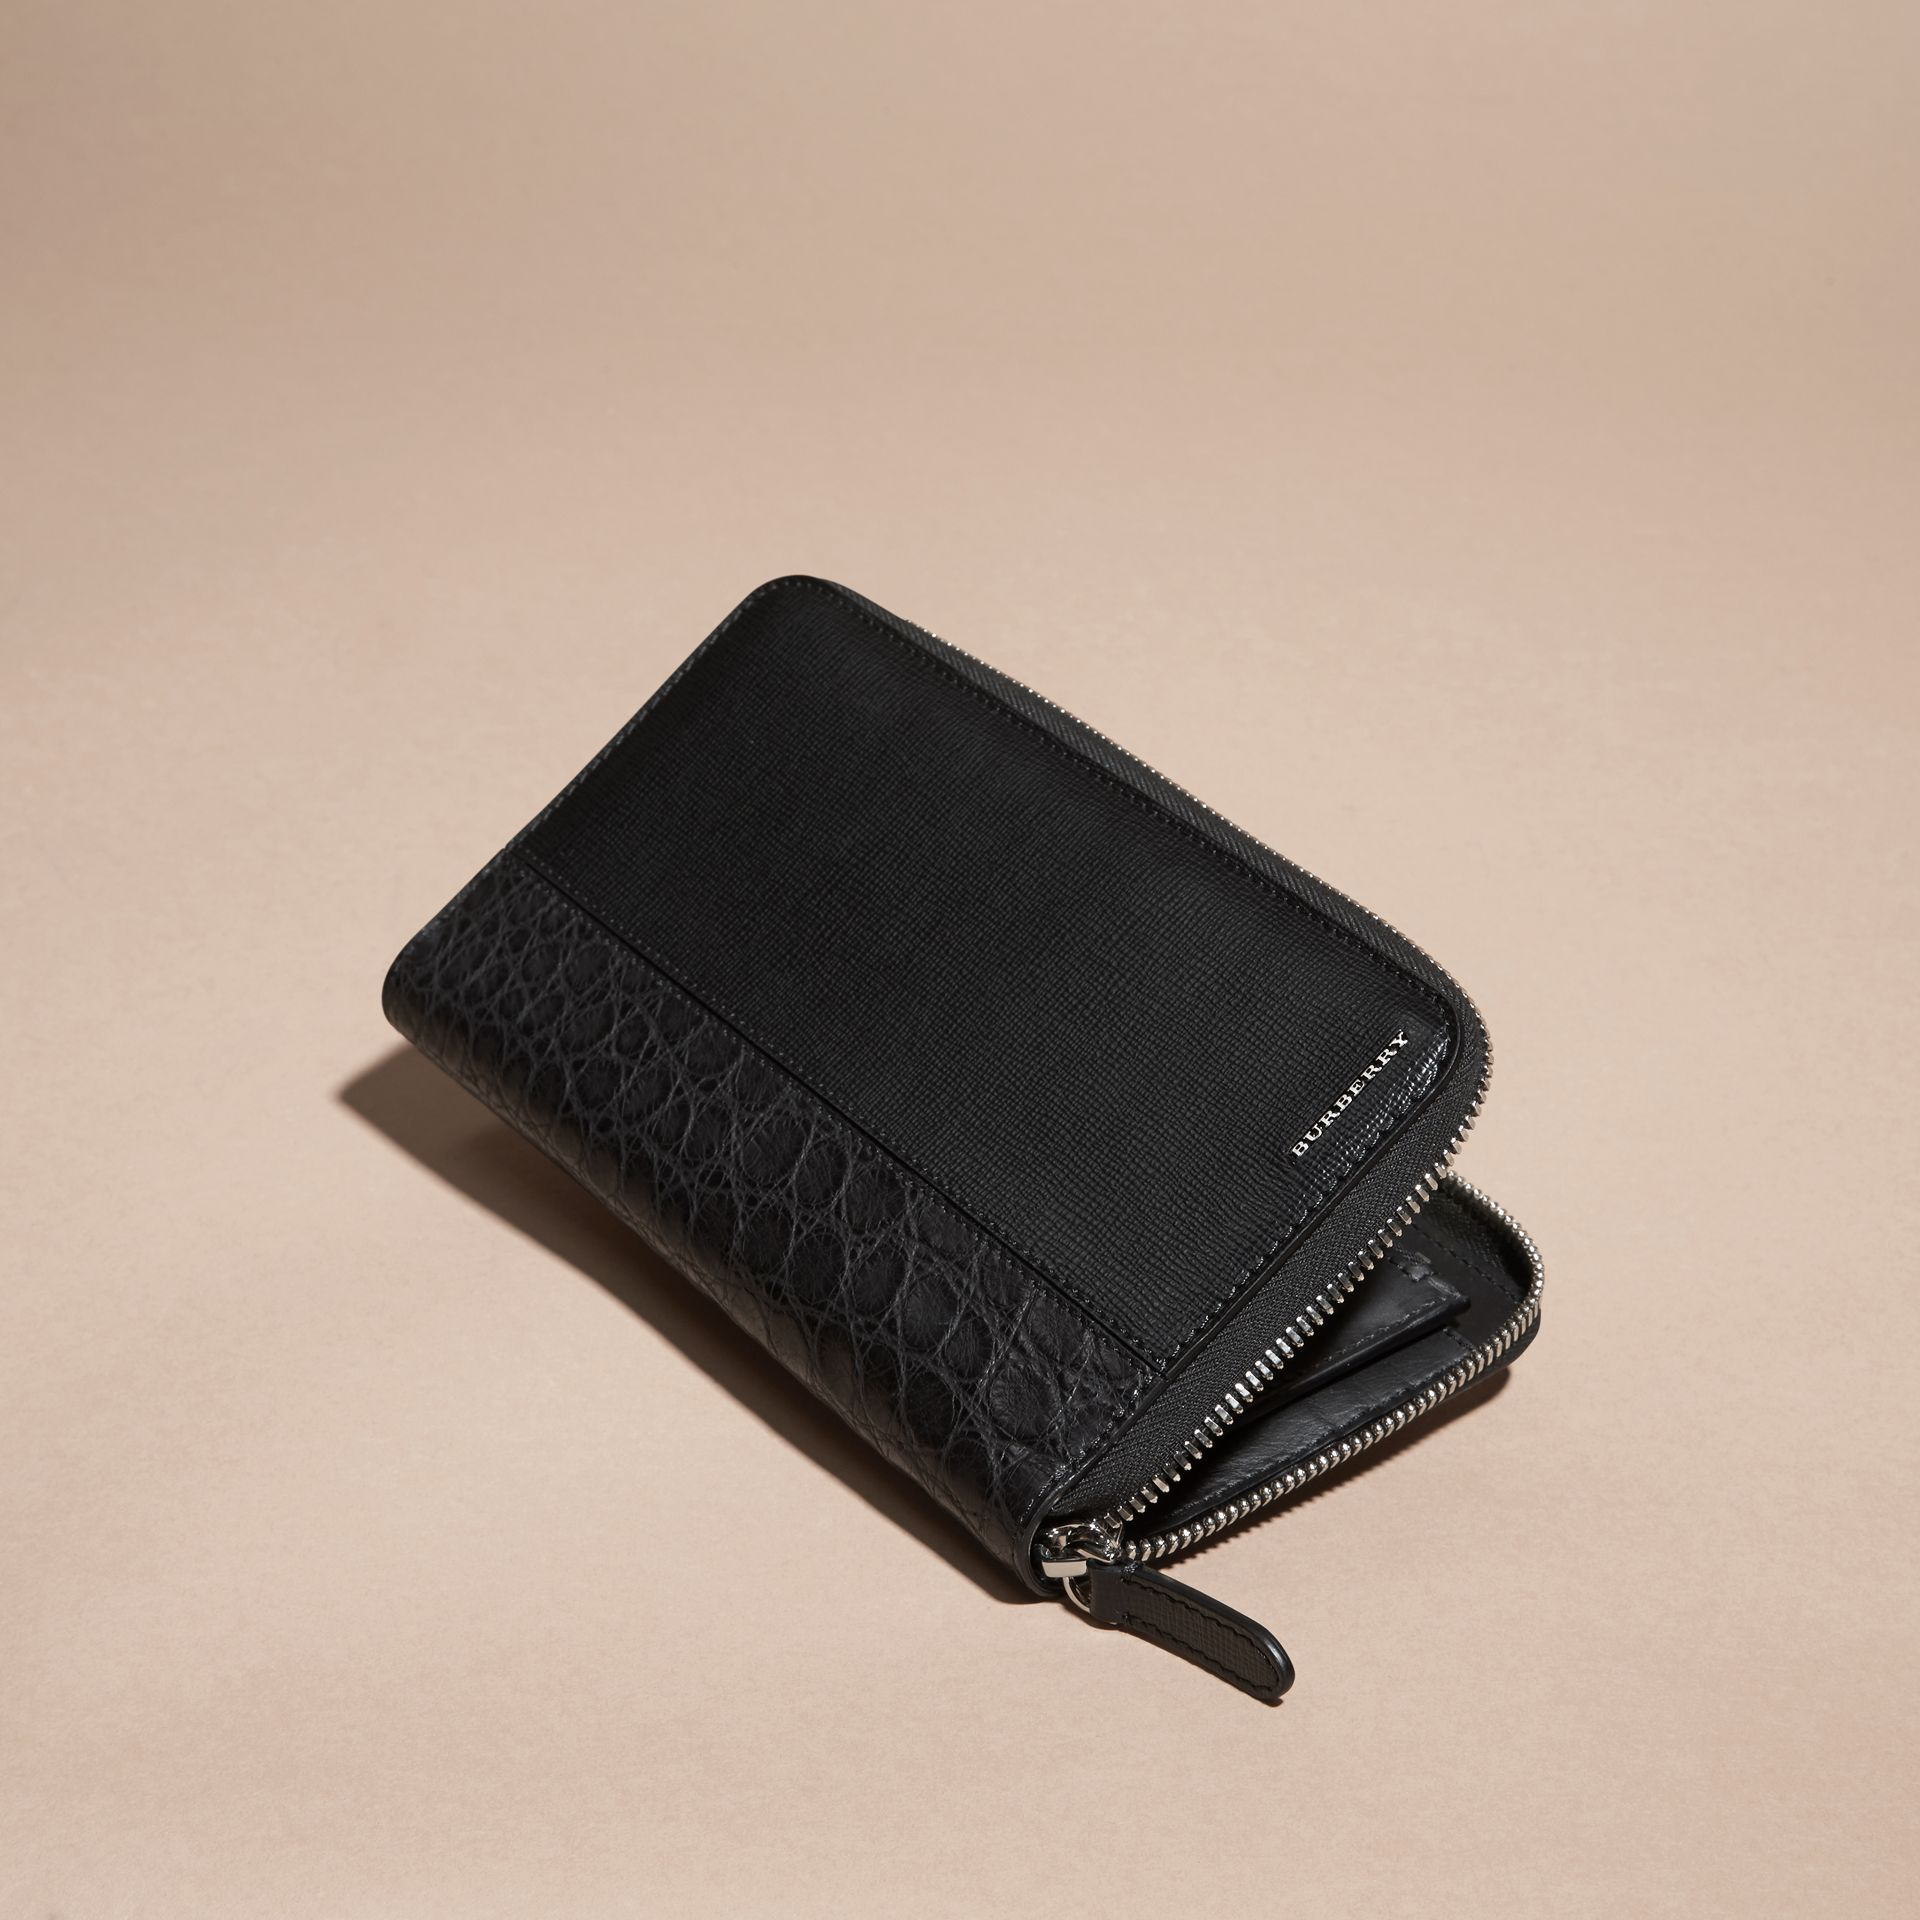 Black London Leather and Alligator Ziparound Wallet Black - gallery image 3